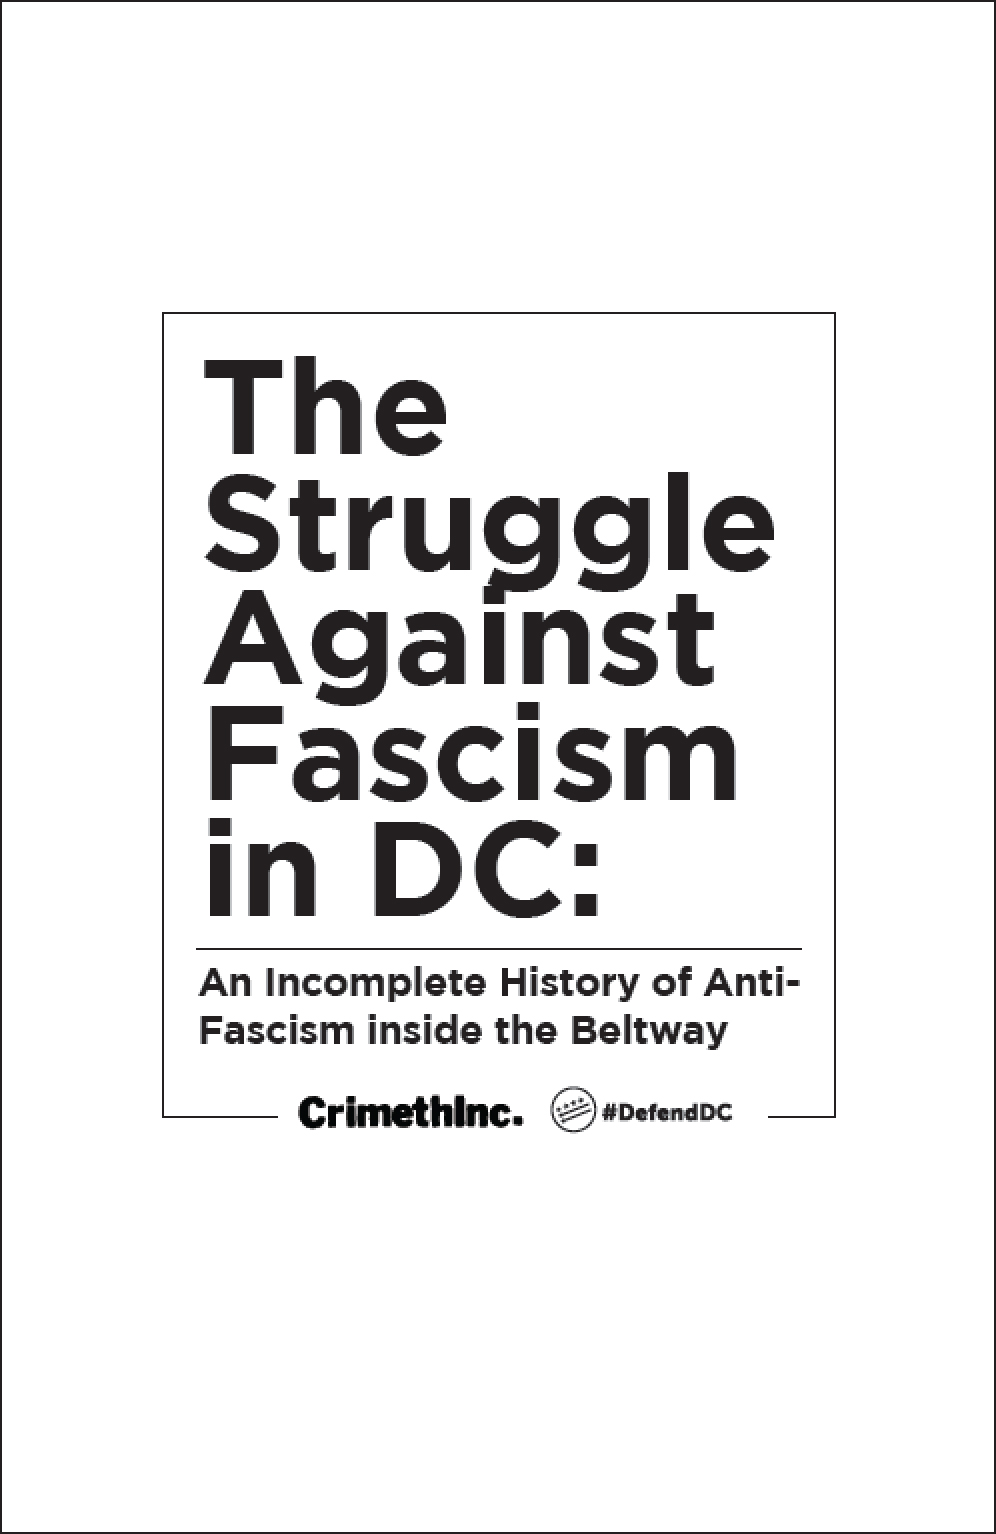 Photo of 'The Struggle Against Fascism in DC' front cover